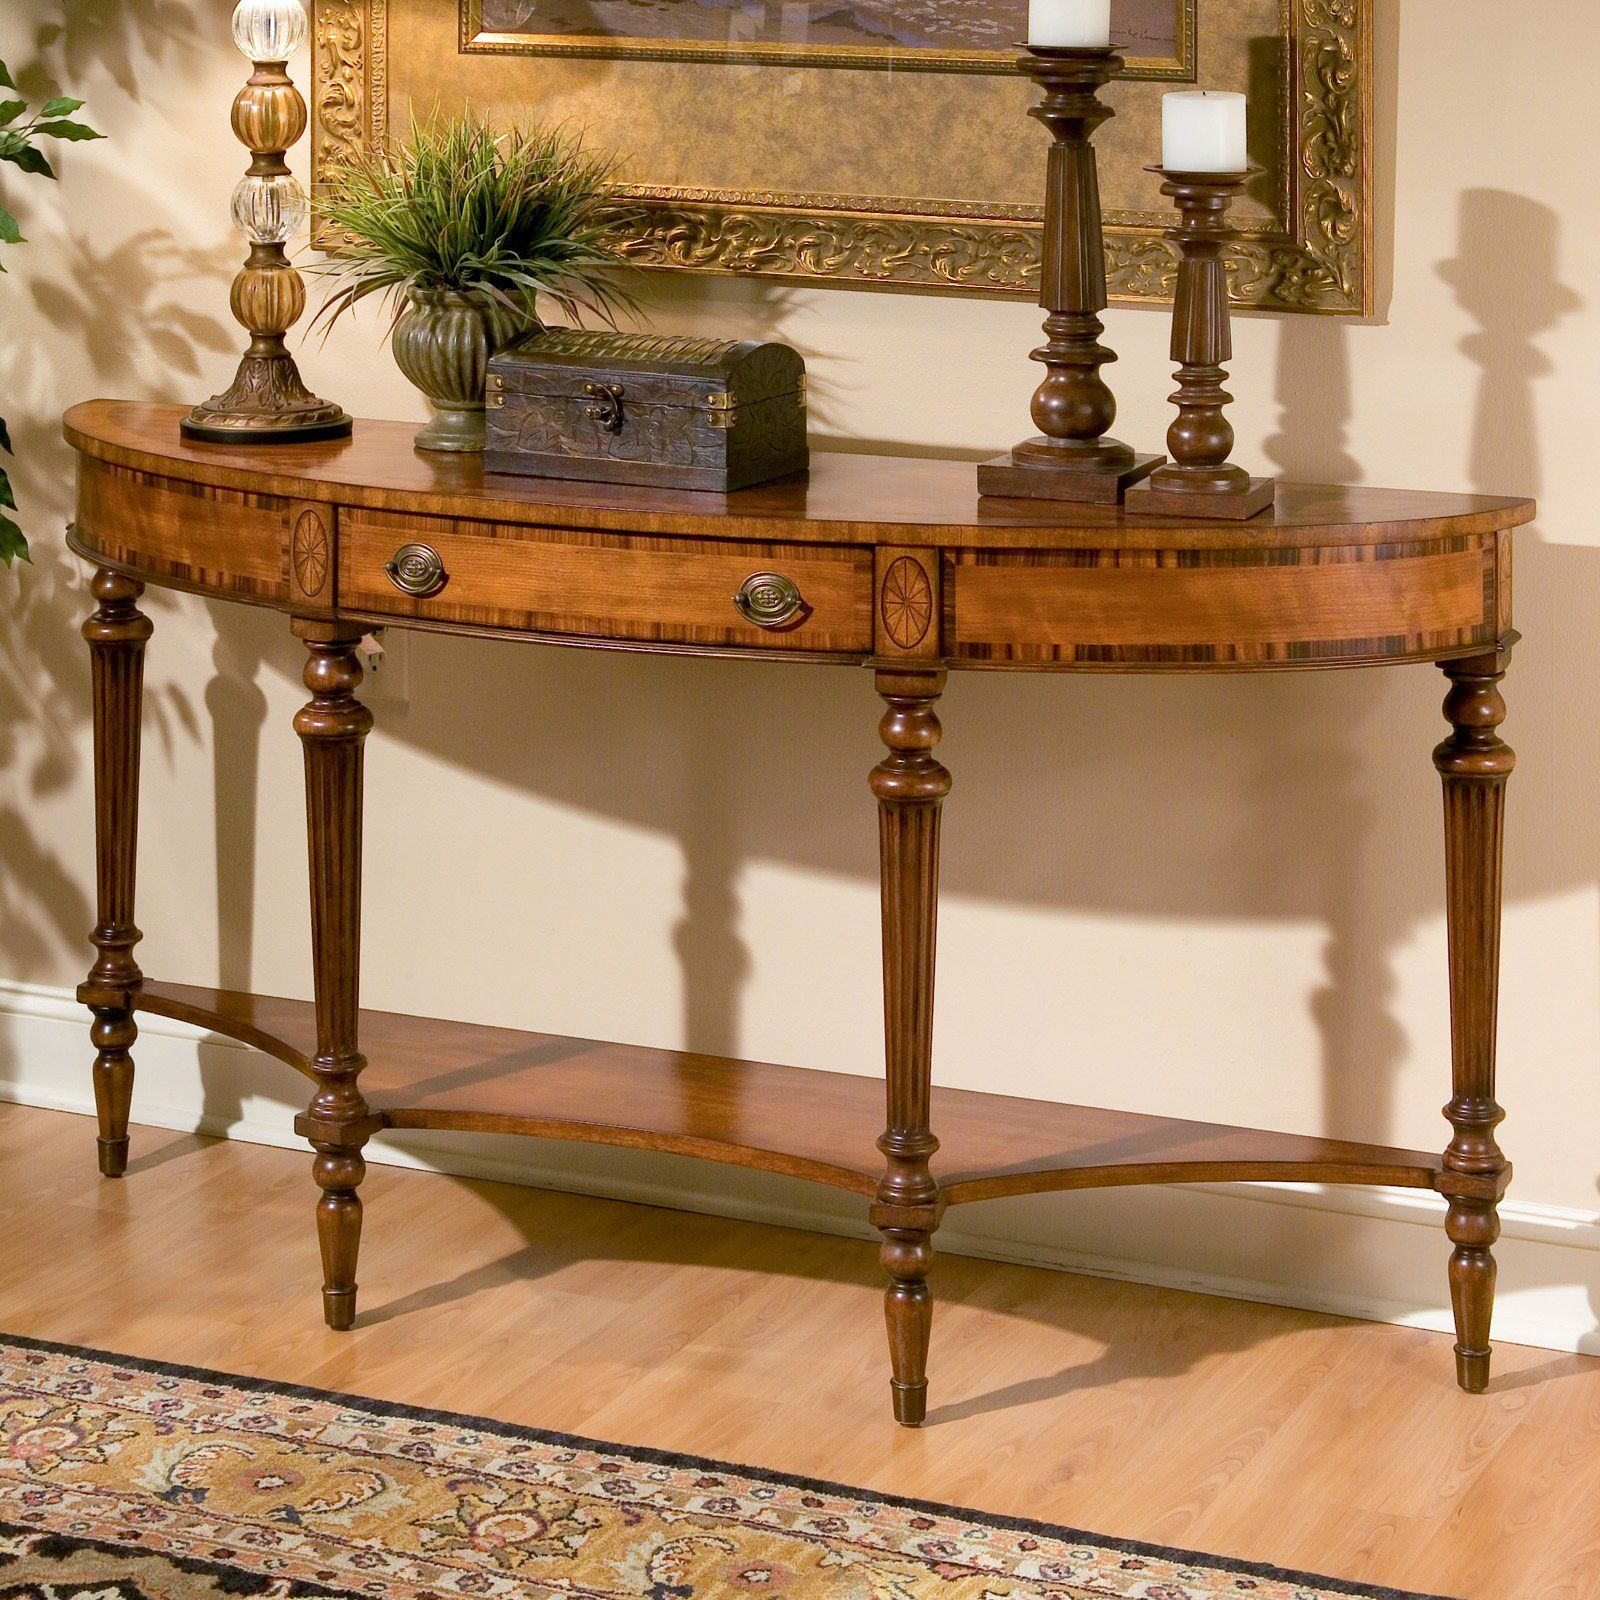 Butler Demilune Console Table 32H in Connoisseurs 1510090